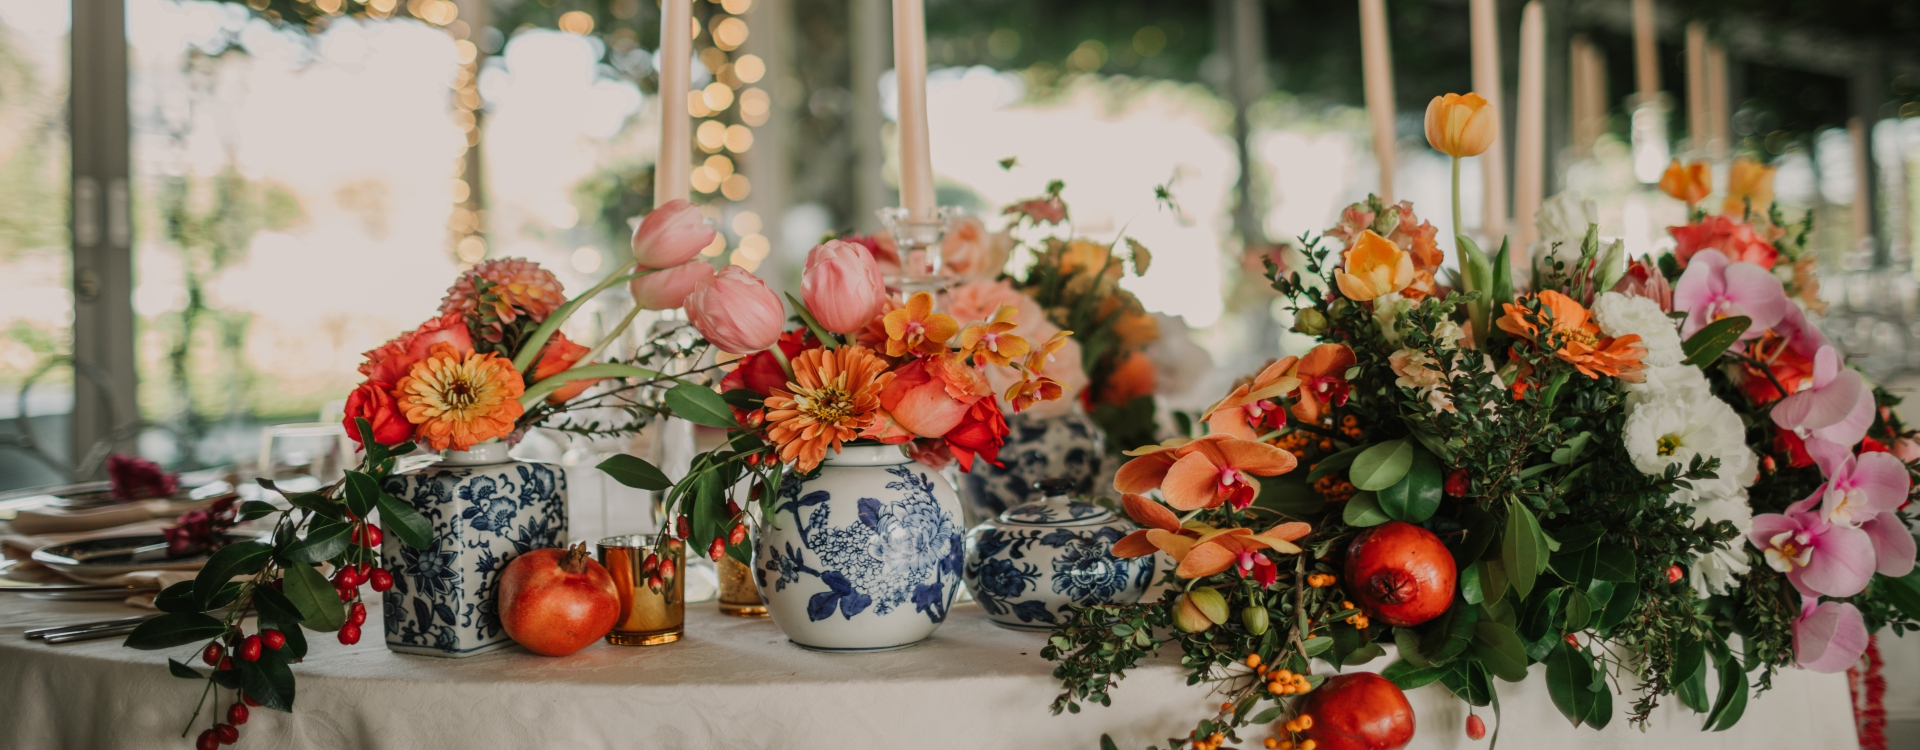 Stunning Fresh Fruit Inspired Wedding Table Arrangements & Center Pieces